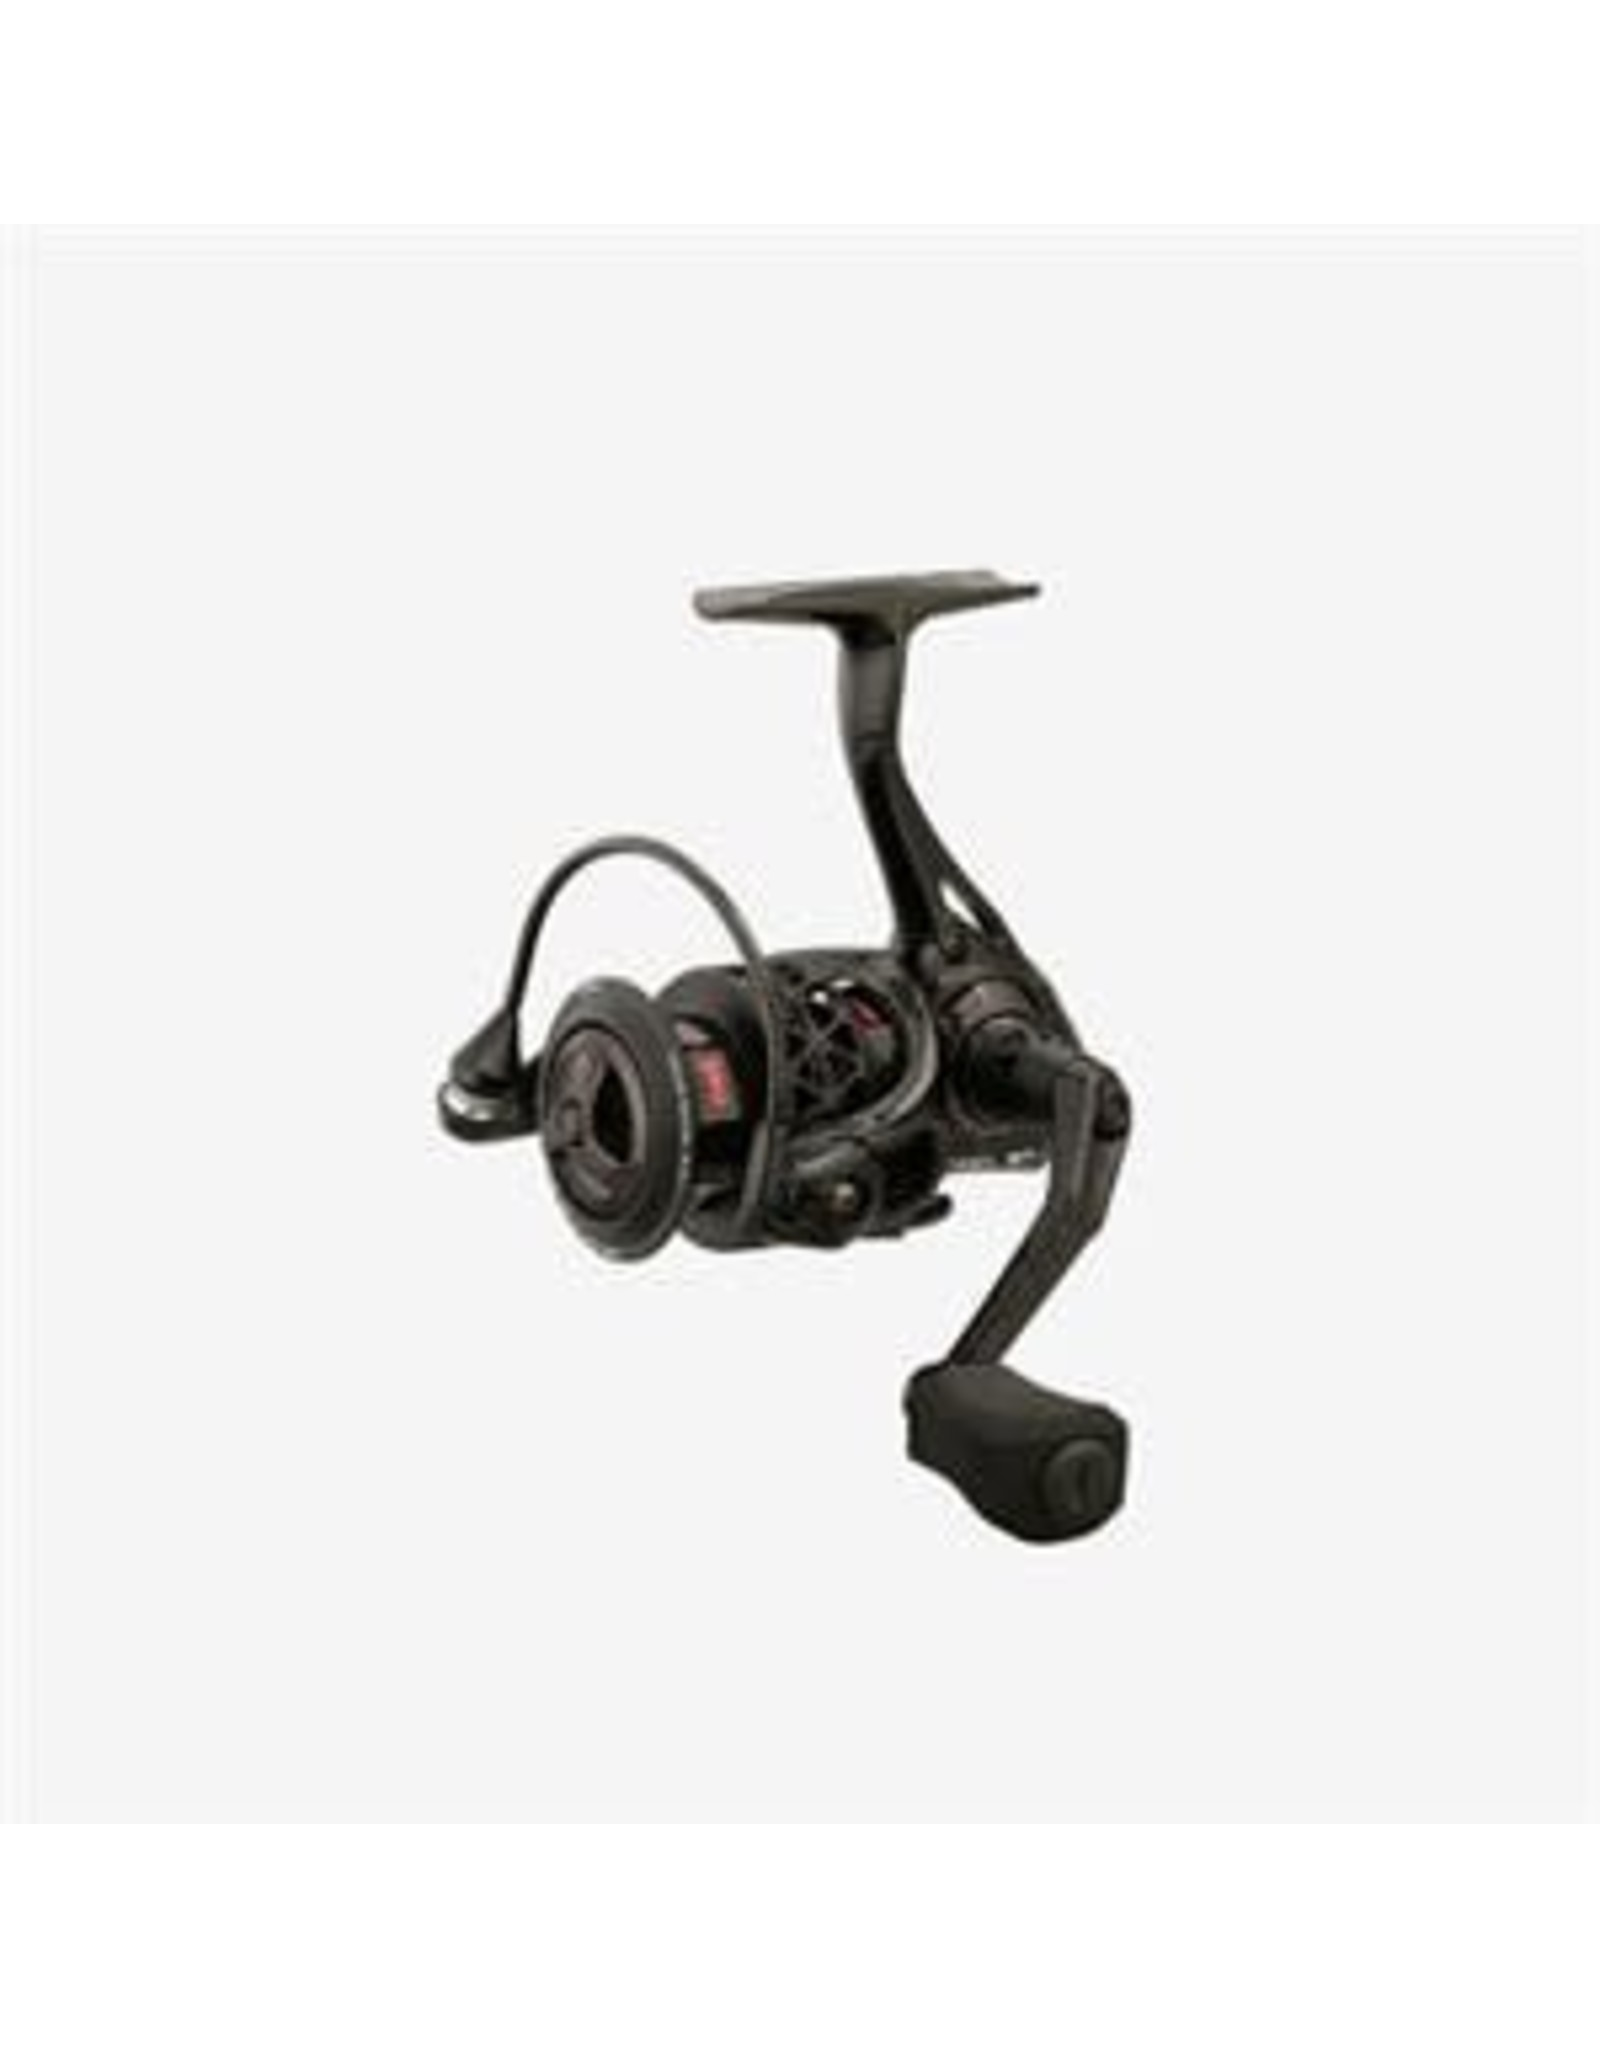 13 Fishing One3 Creed GT Spinning Reel